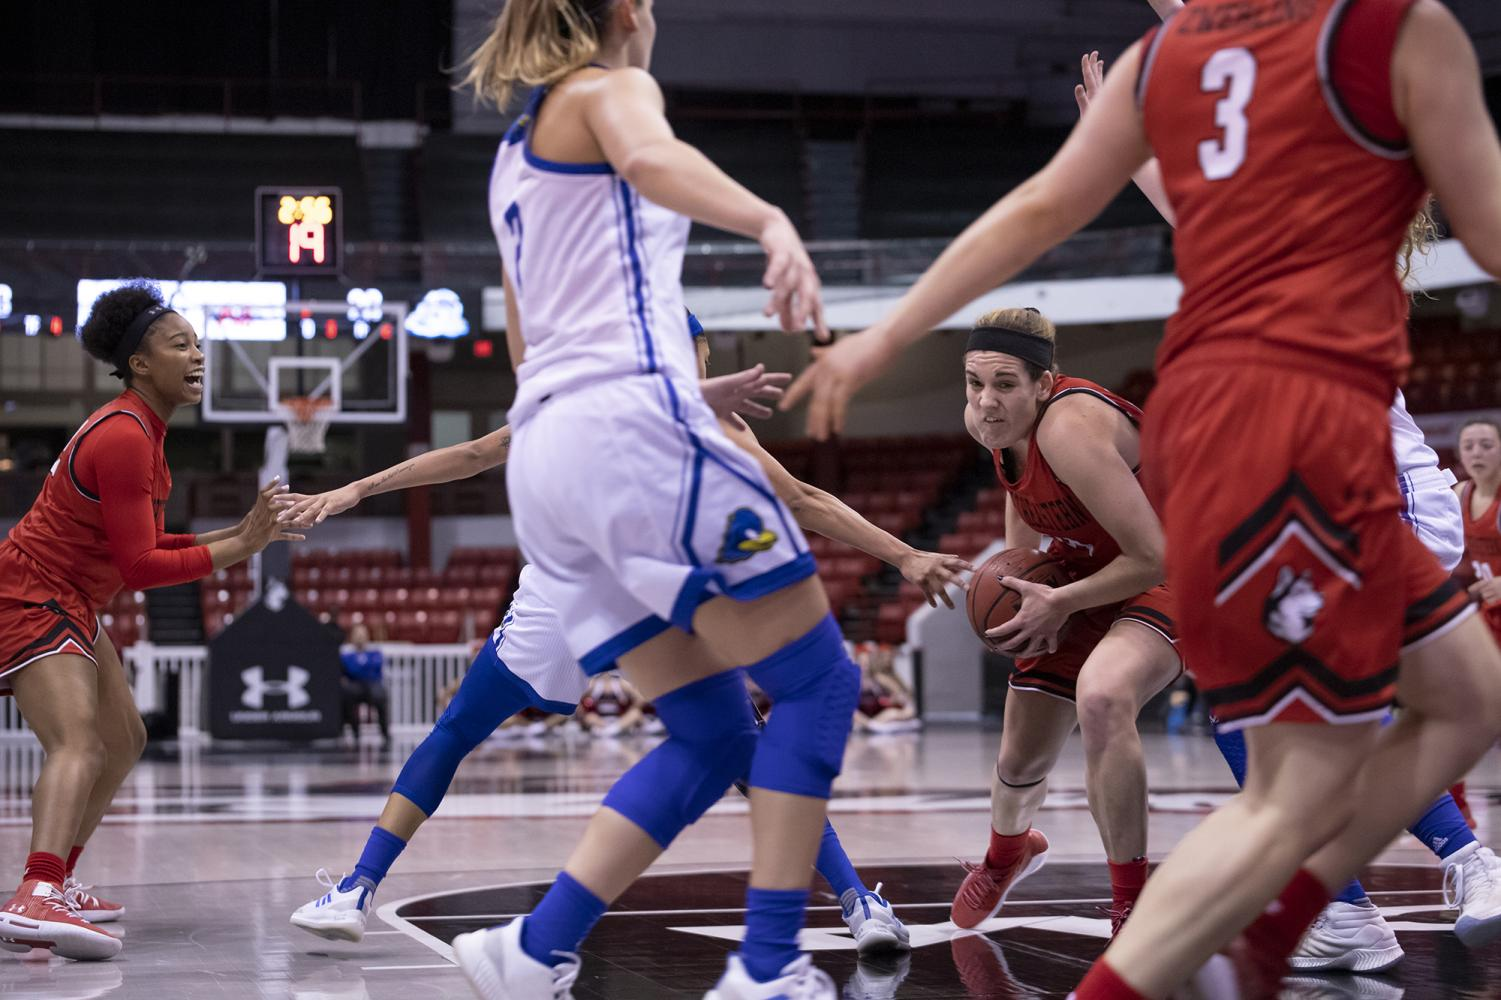 Senior forward Gabby Giacone drives into the paint in a Jan 20 game against Delaware.